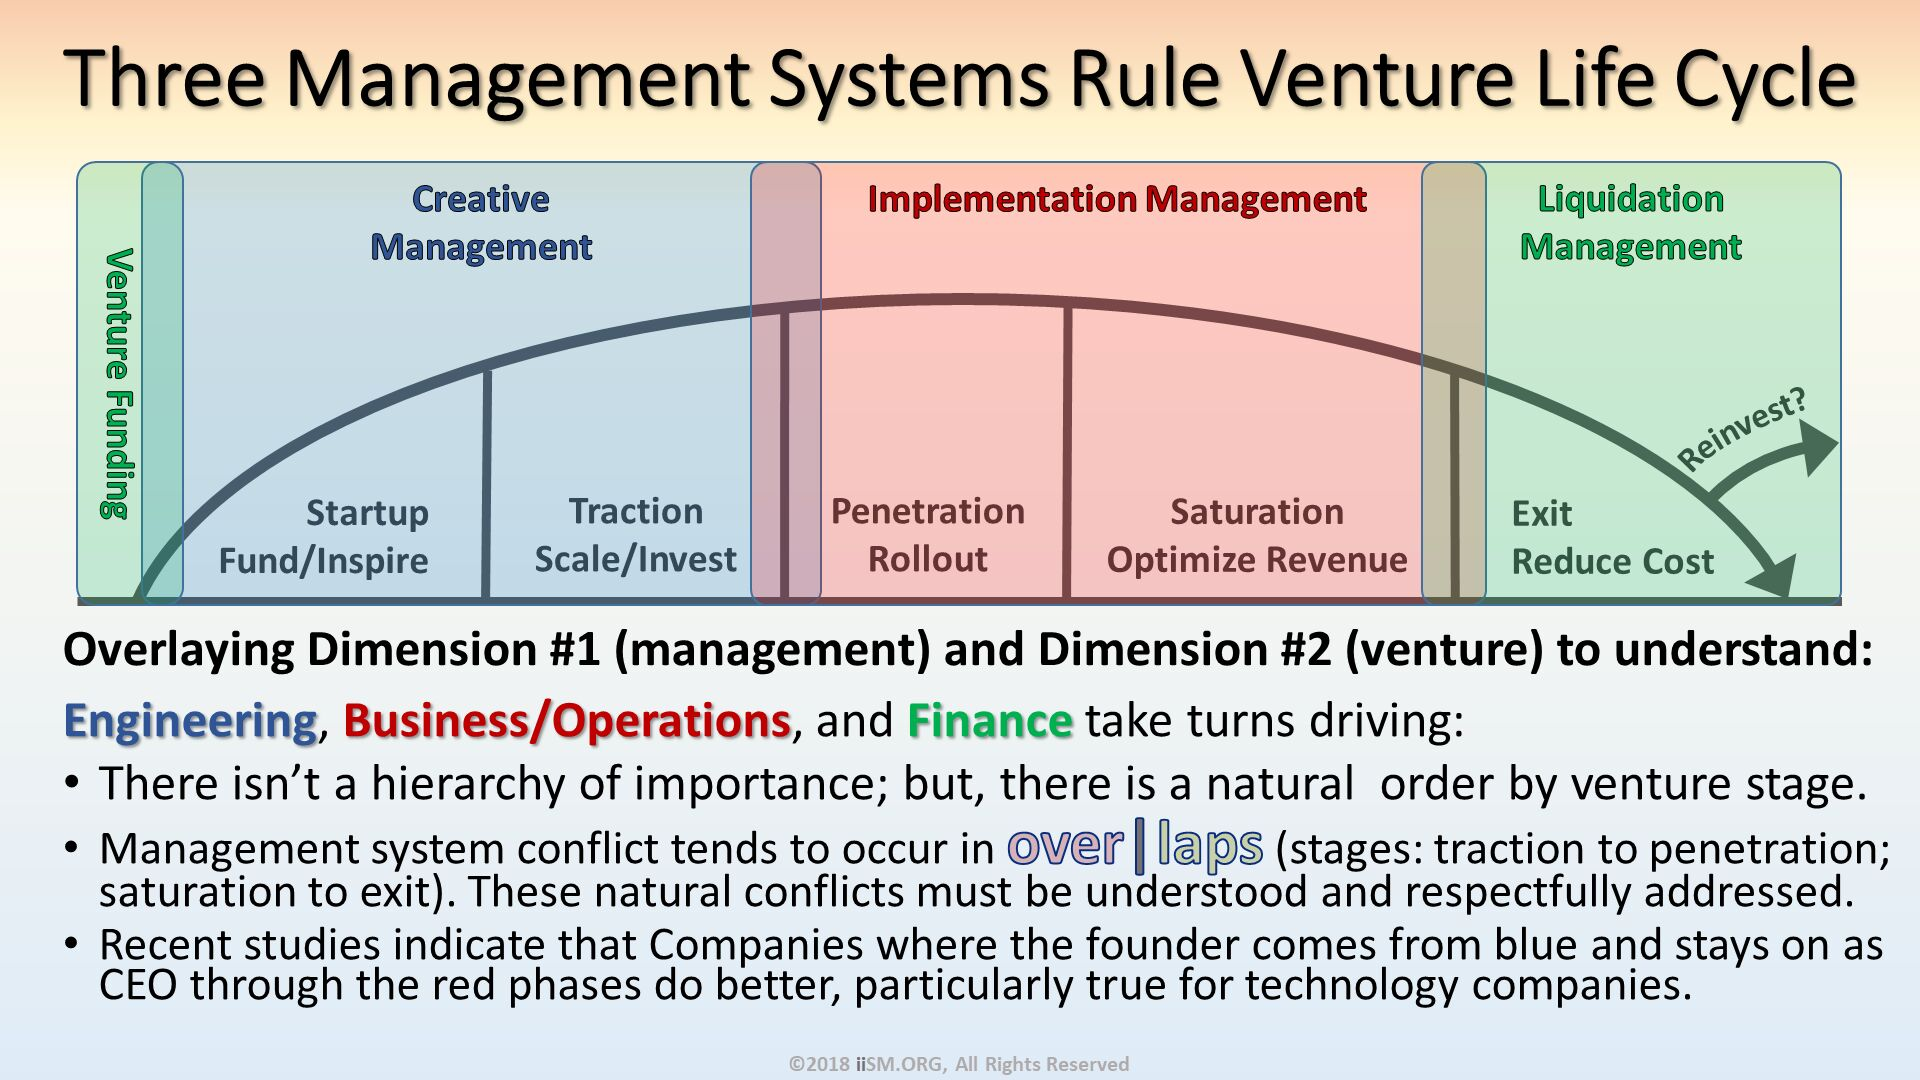 Three Management Systems Rule Venture Life Cycle. Engineering, Business/Operations, and Finance take turns driving: There isn't a hierarchy of importance; but, there is a natural  order by venture stage. Management system conflict tends to occur in over| laps (stages: traction to penetration; saturation to exit). These natural conflicts must be understood and respectfully addressed. Recent studies indicate that Companies where the founder comes from blue and stays on as CEO through the red phases do better, particularly true for technology companies. ©2018 iiSM.ORG, All Rights Reserved. Overlaying Dimension #1 (management) and Dimension #2 (venture) to understand:.